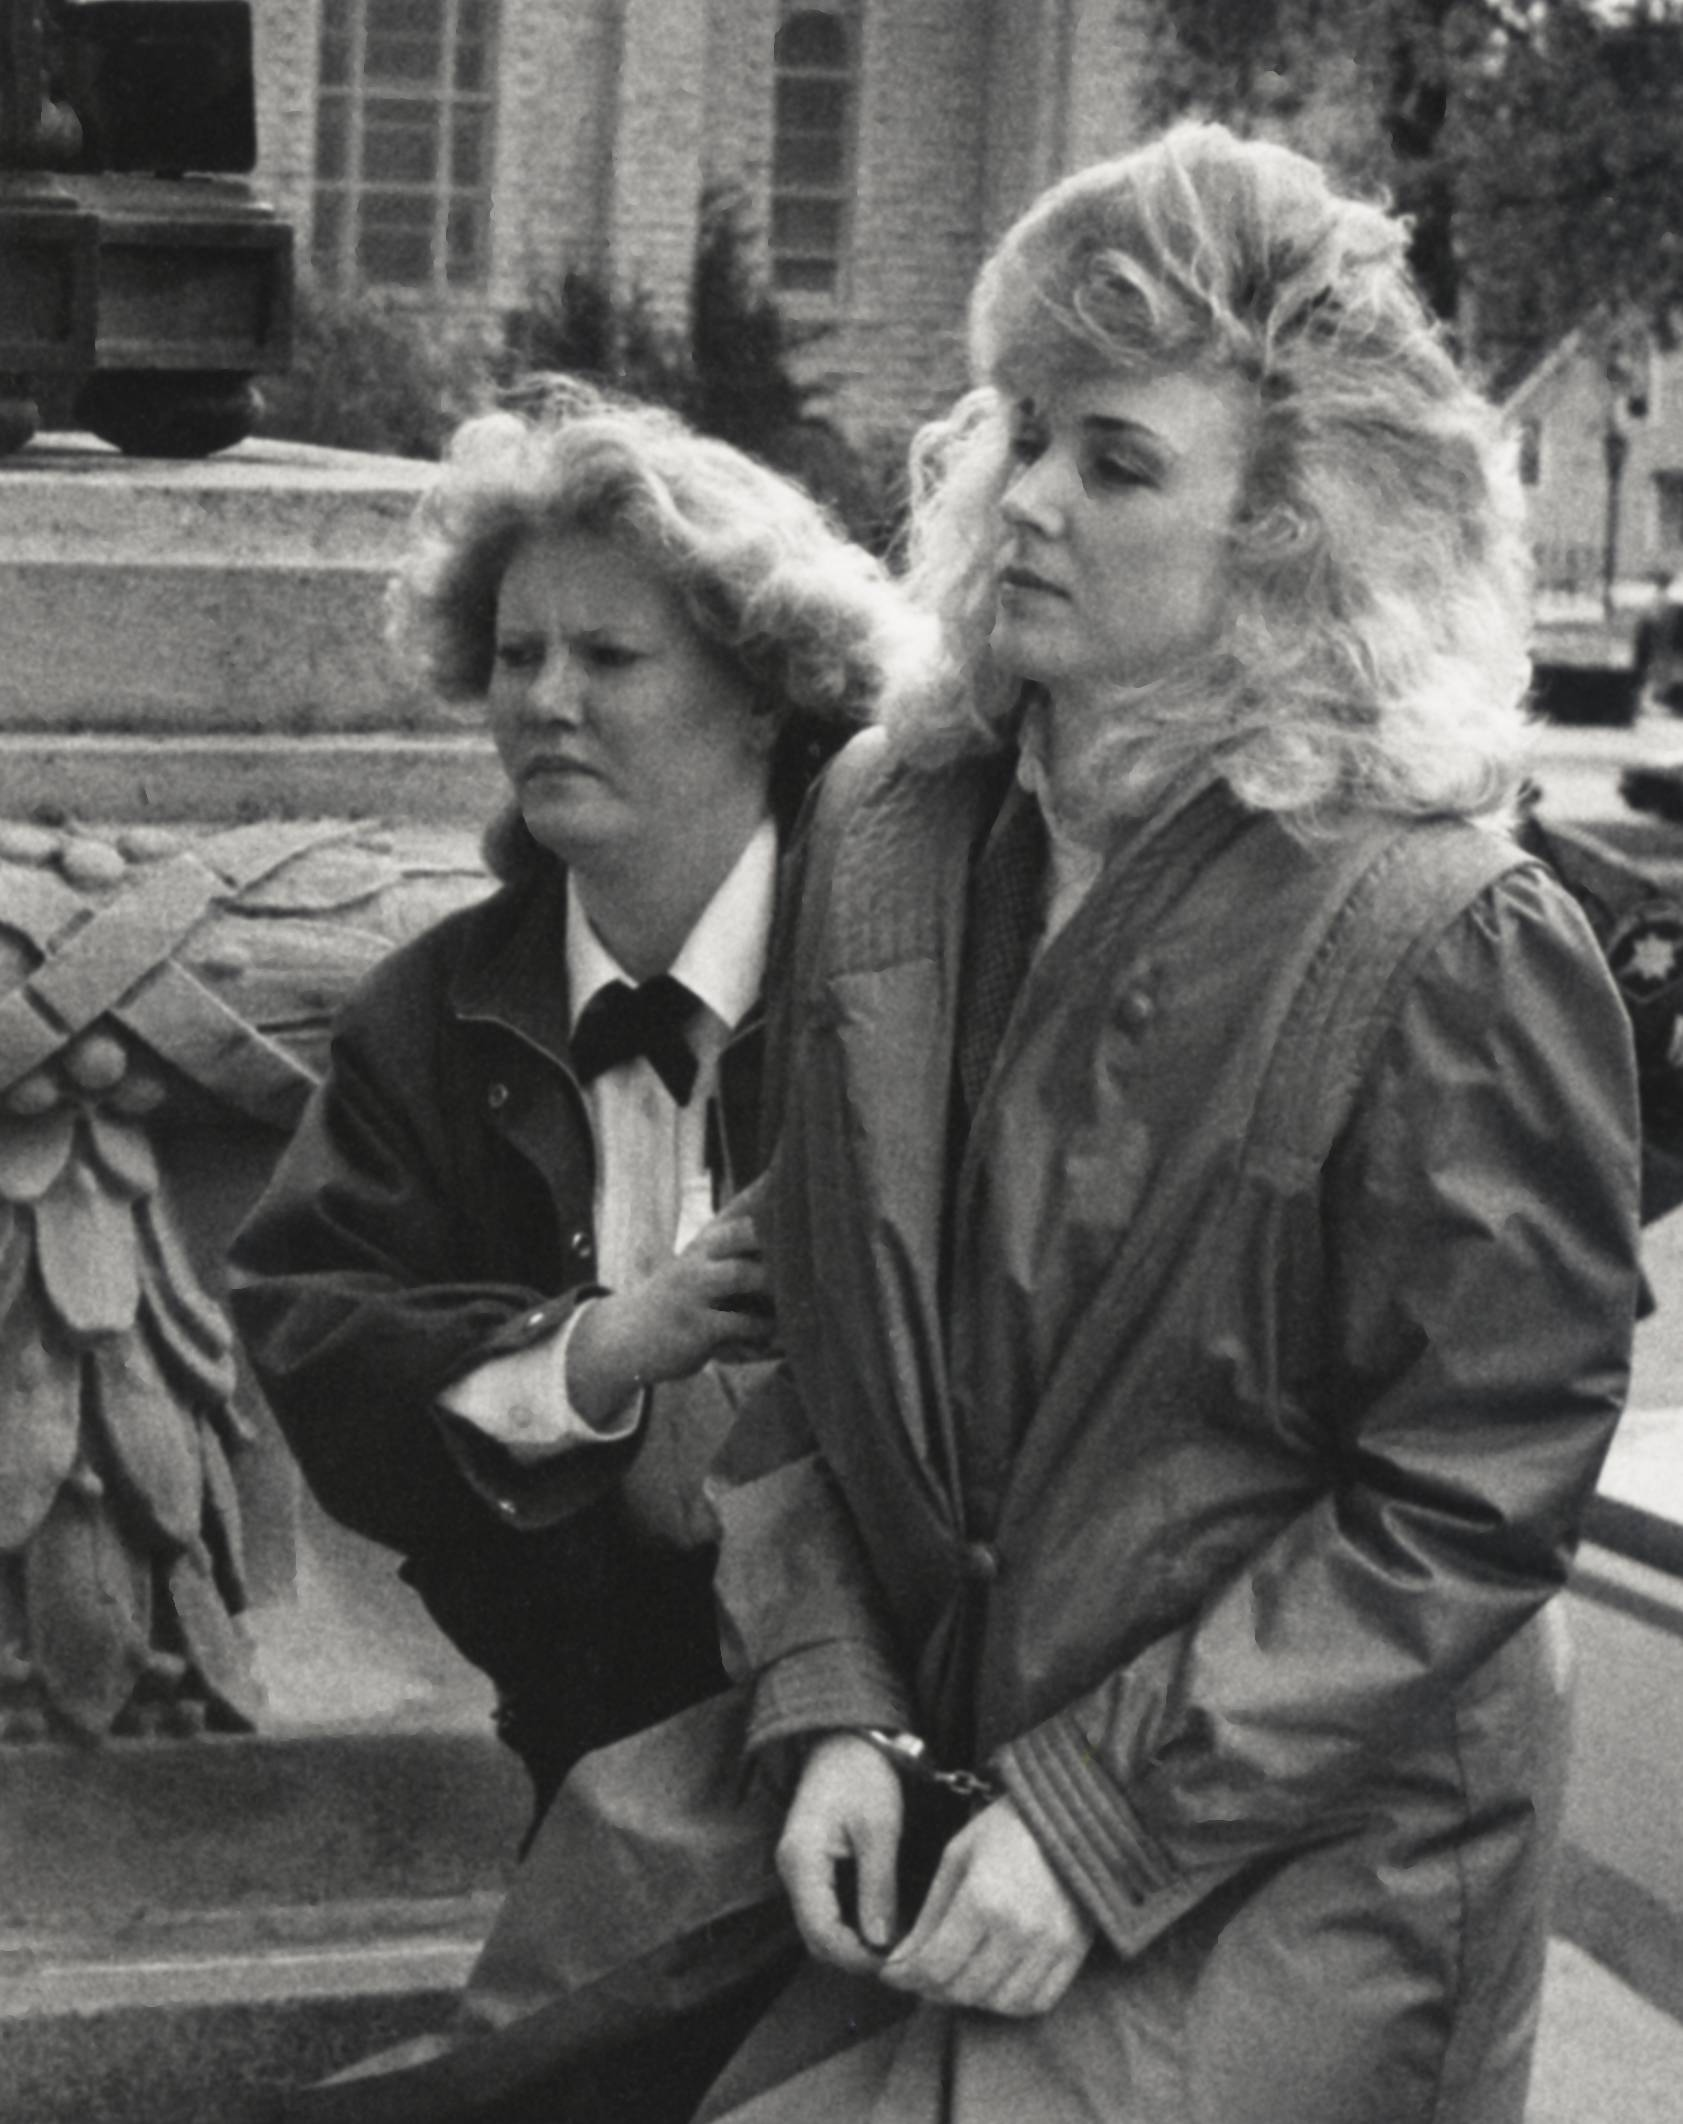 Nancy Rish, right, is escorted outside the Kankakee courthouse during her trial for the 1987 kidnapping and killing of Stephen Small.